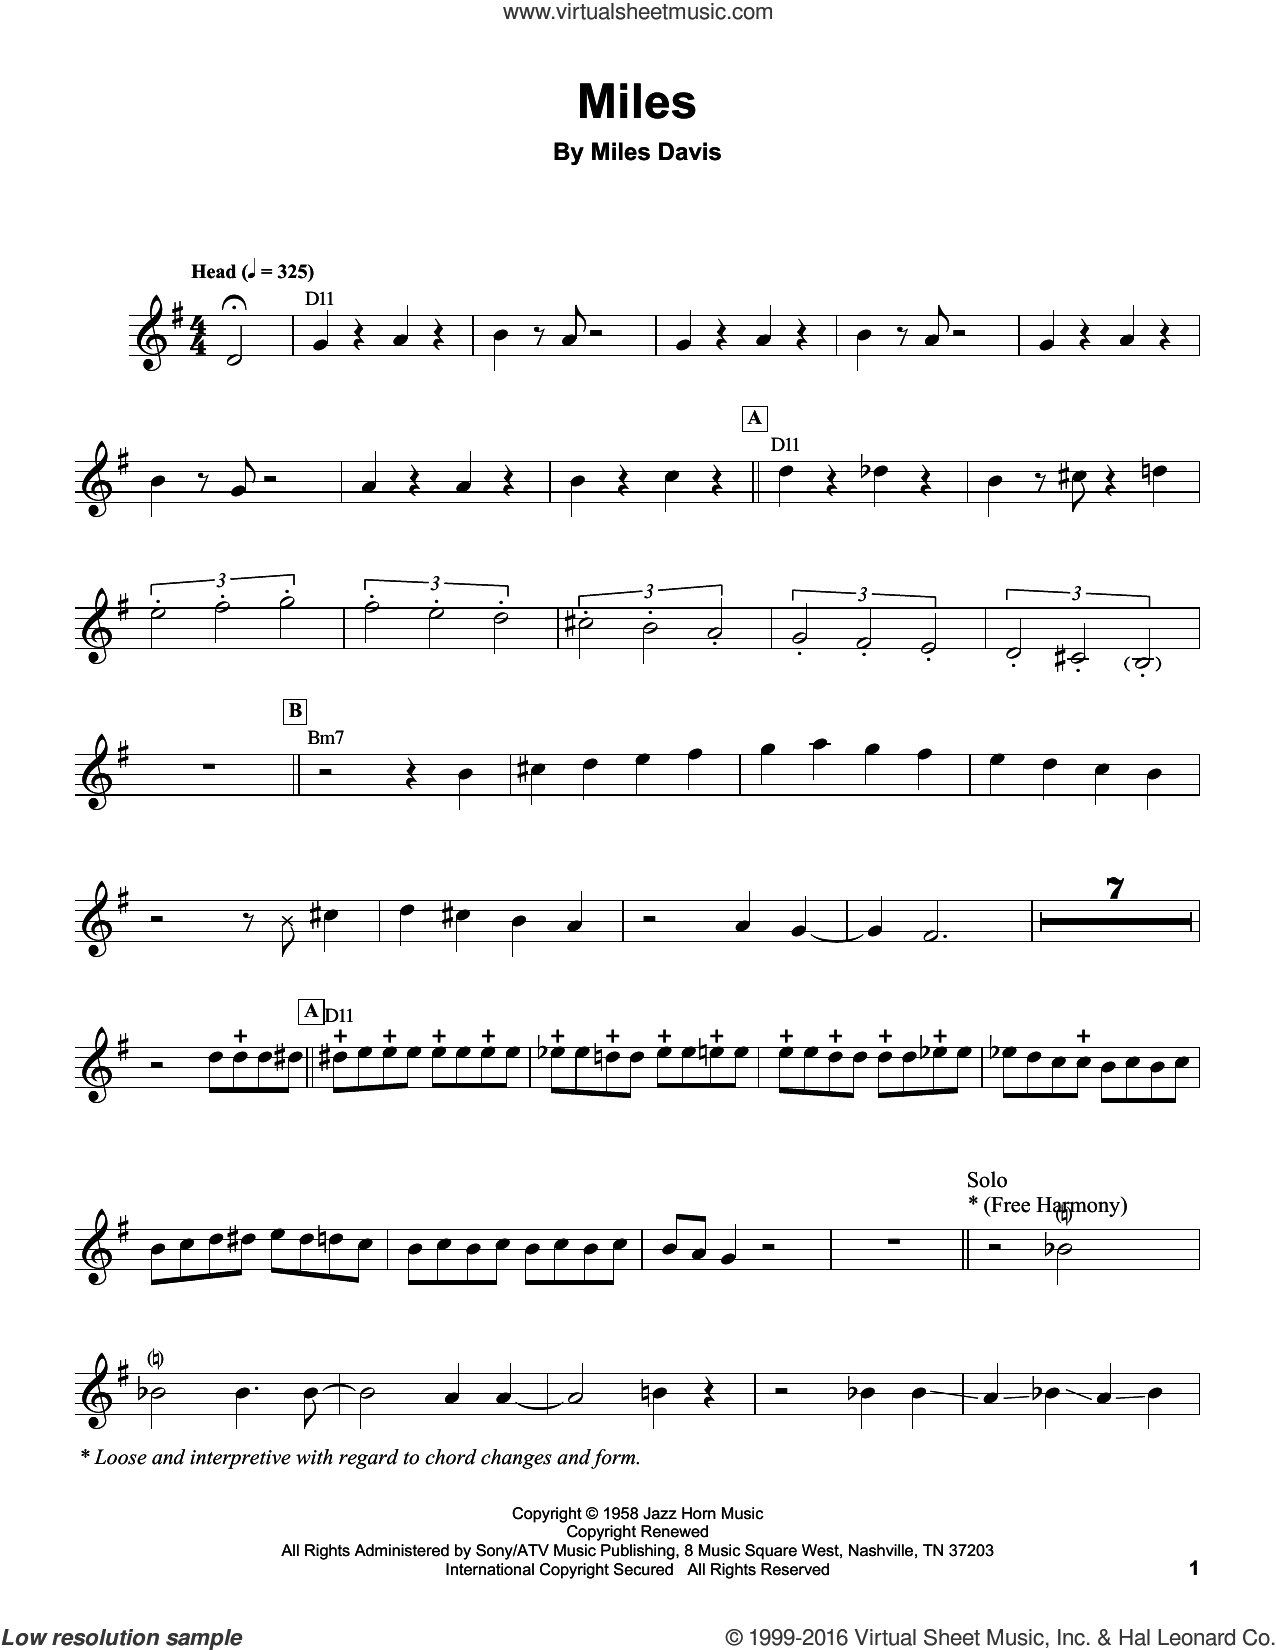 Miles sheet music for trumpet solo (transcription) by Miles Davis, intermediate trumpet (transcription)